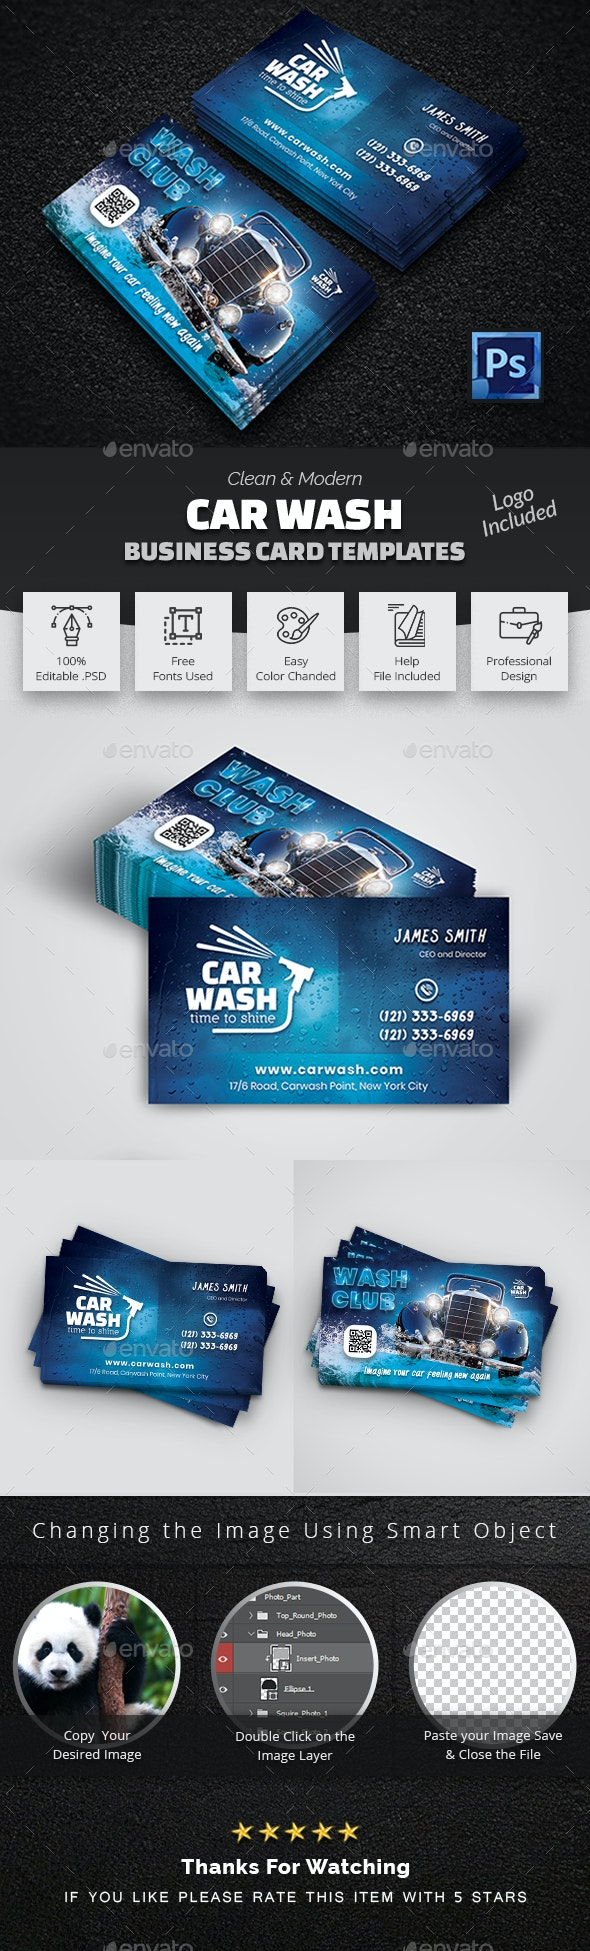 Car Wash Business Card Template - Creative Business Cards